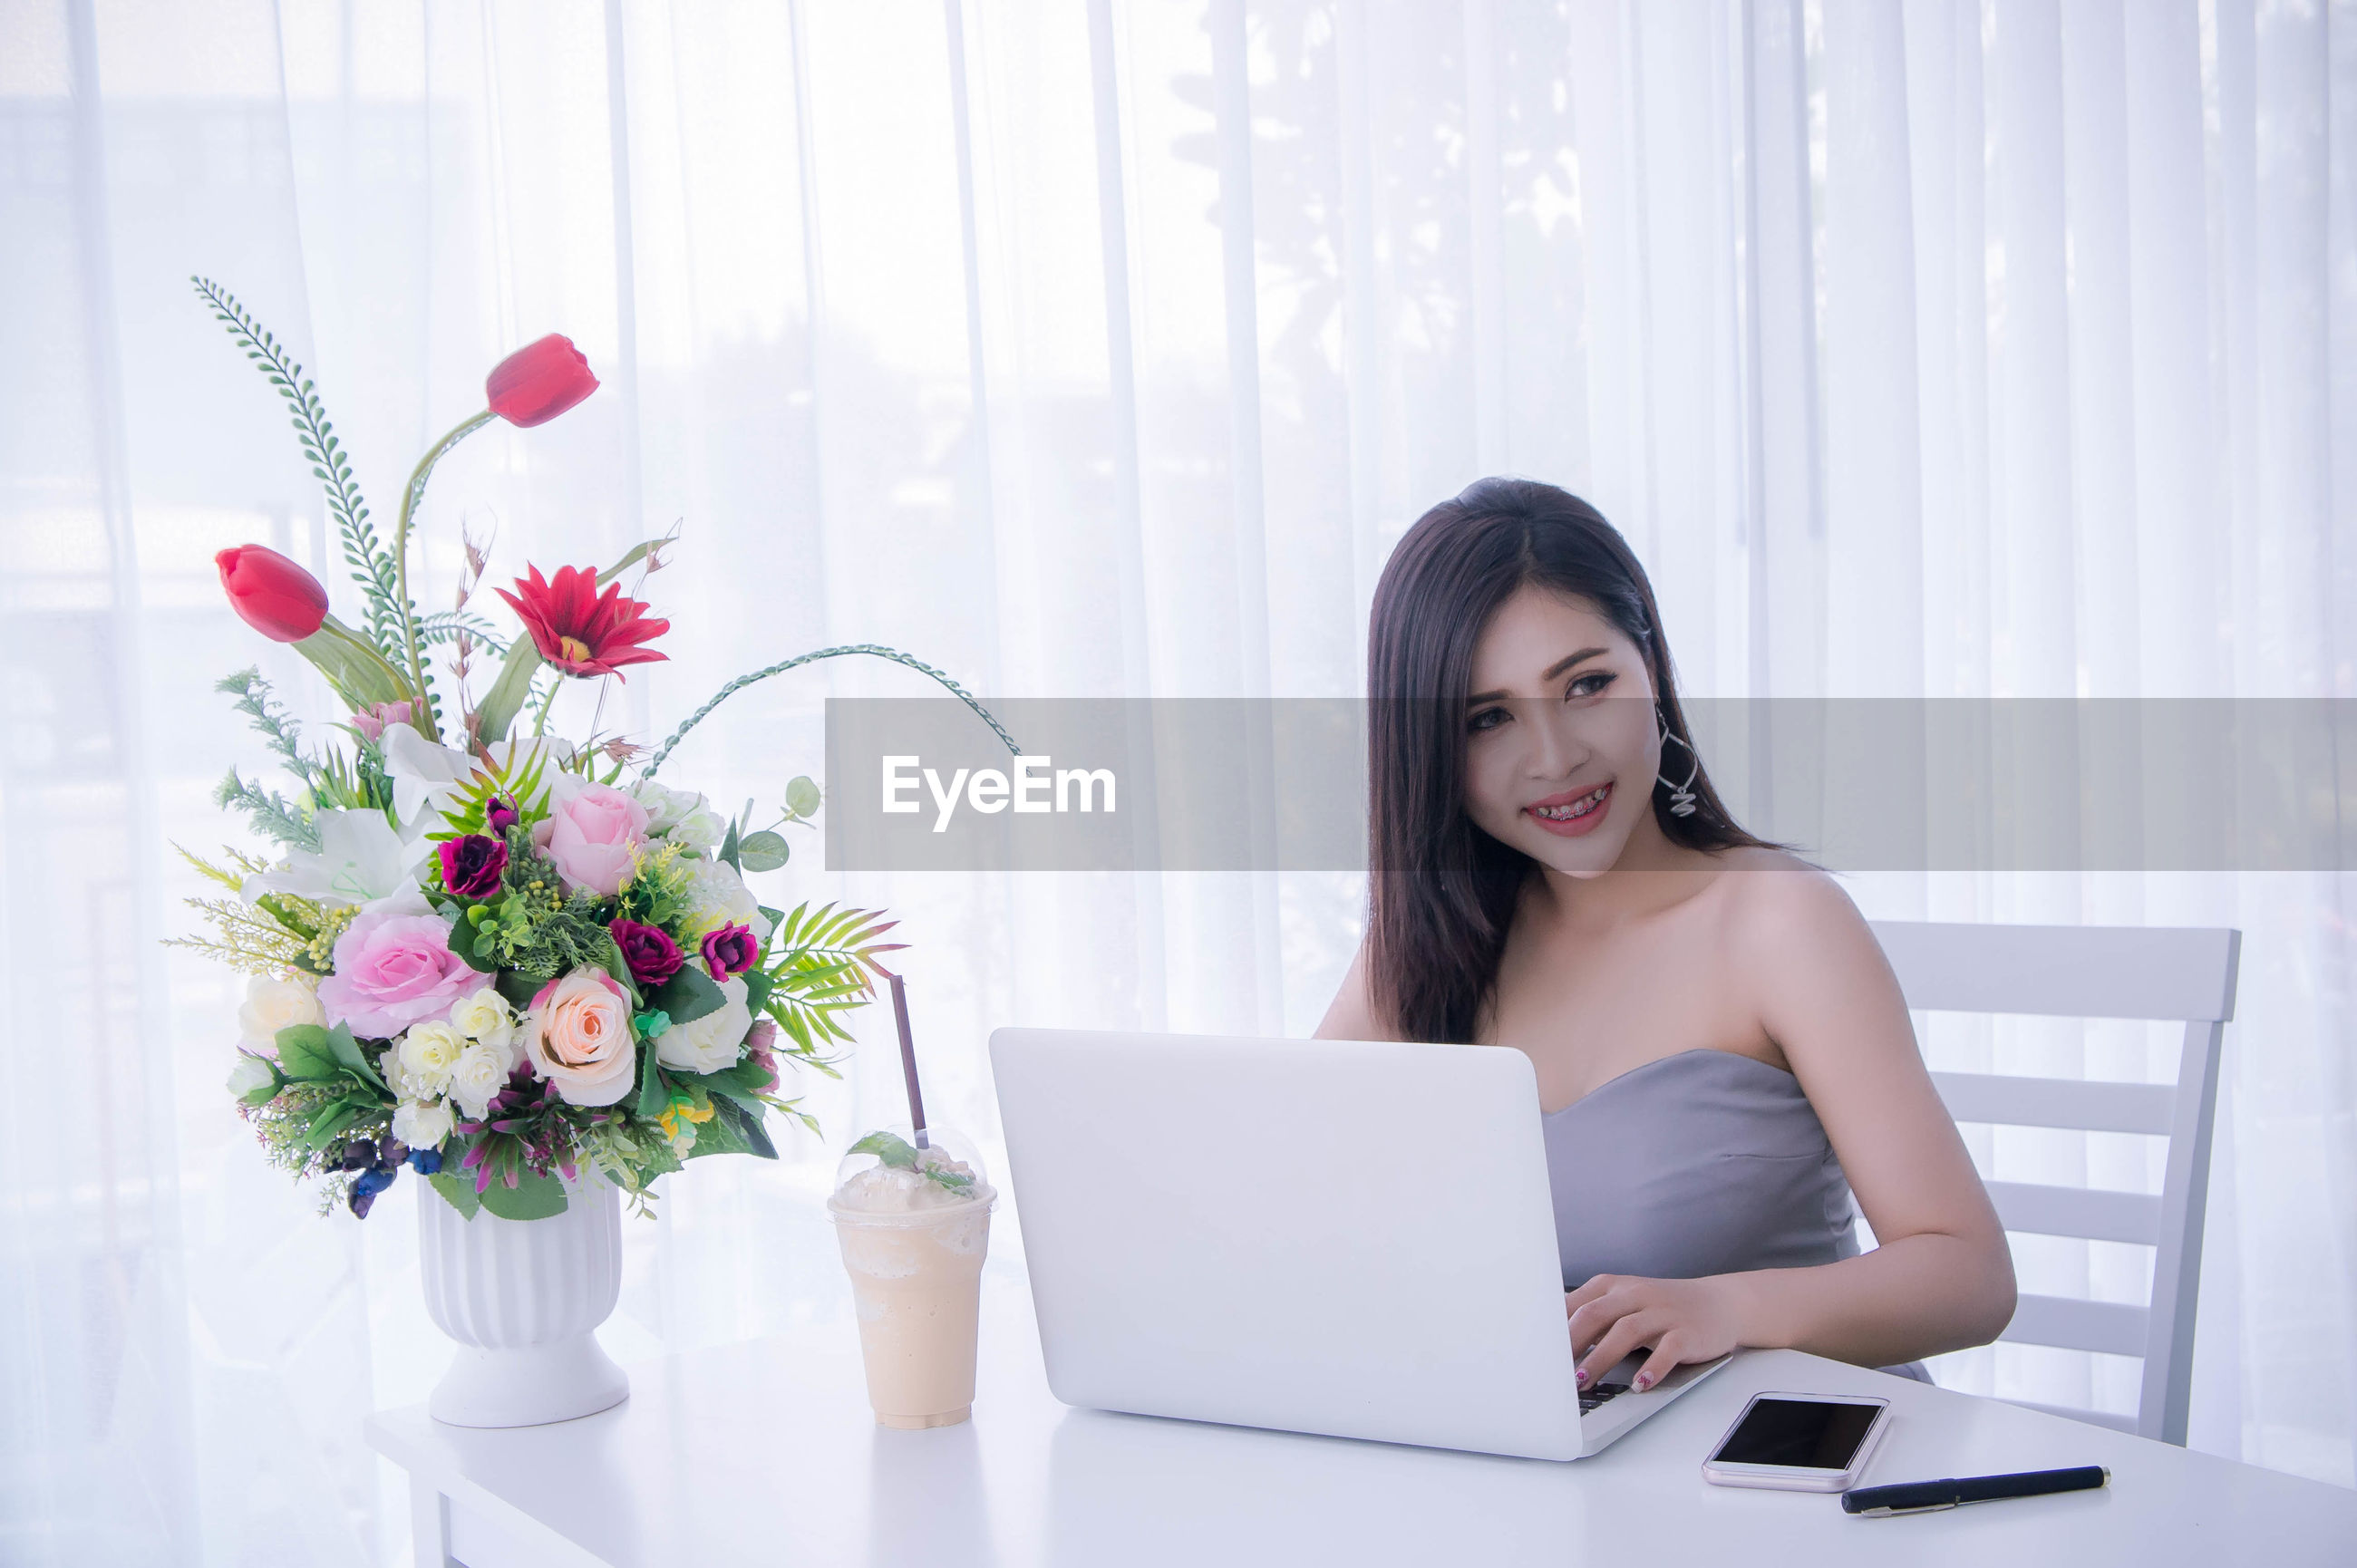 Smiling young woman using laptop on table at home